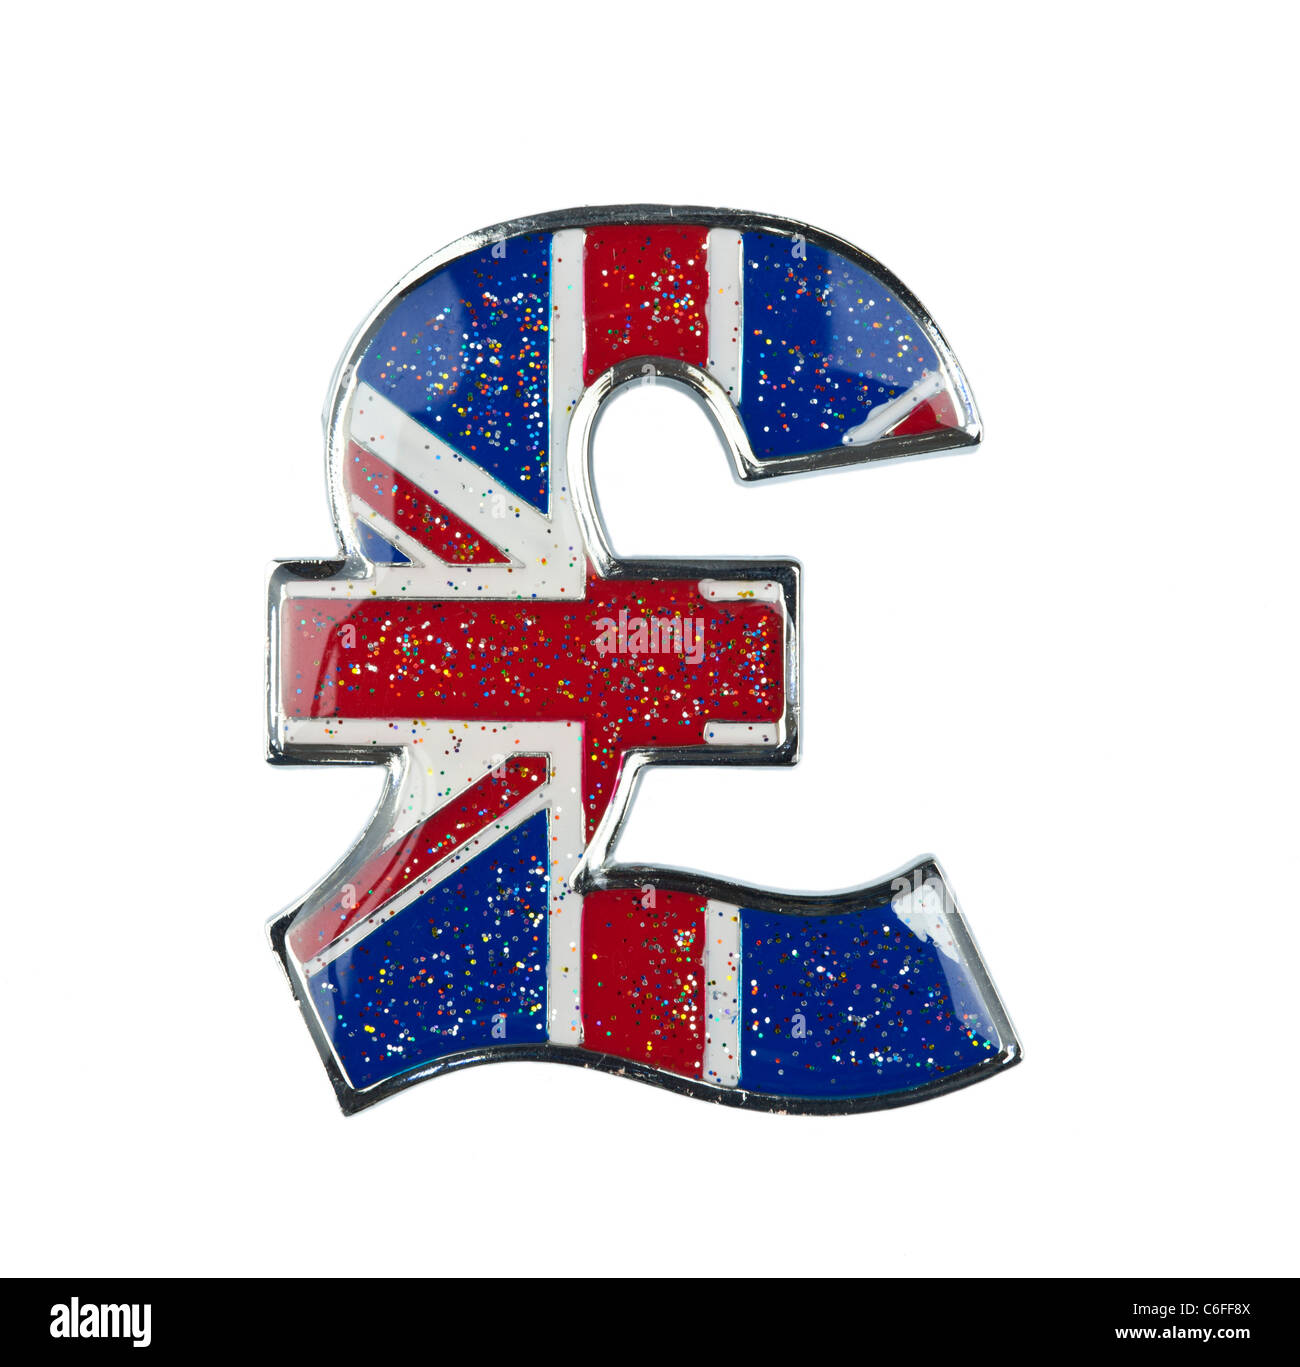 Britain Sterling Pound Stock Photos Britain Sterling Pound Stock